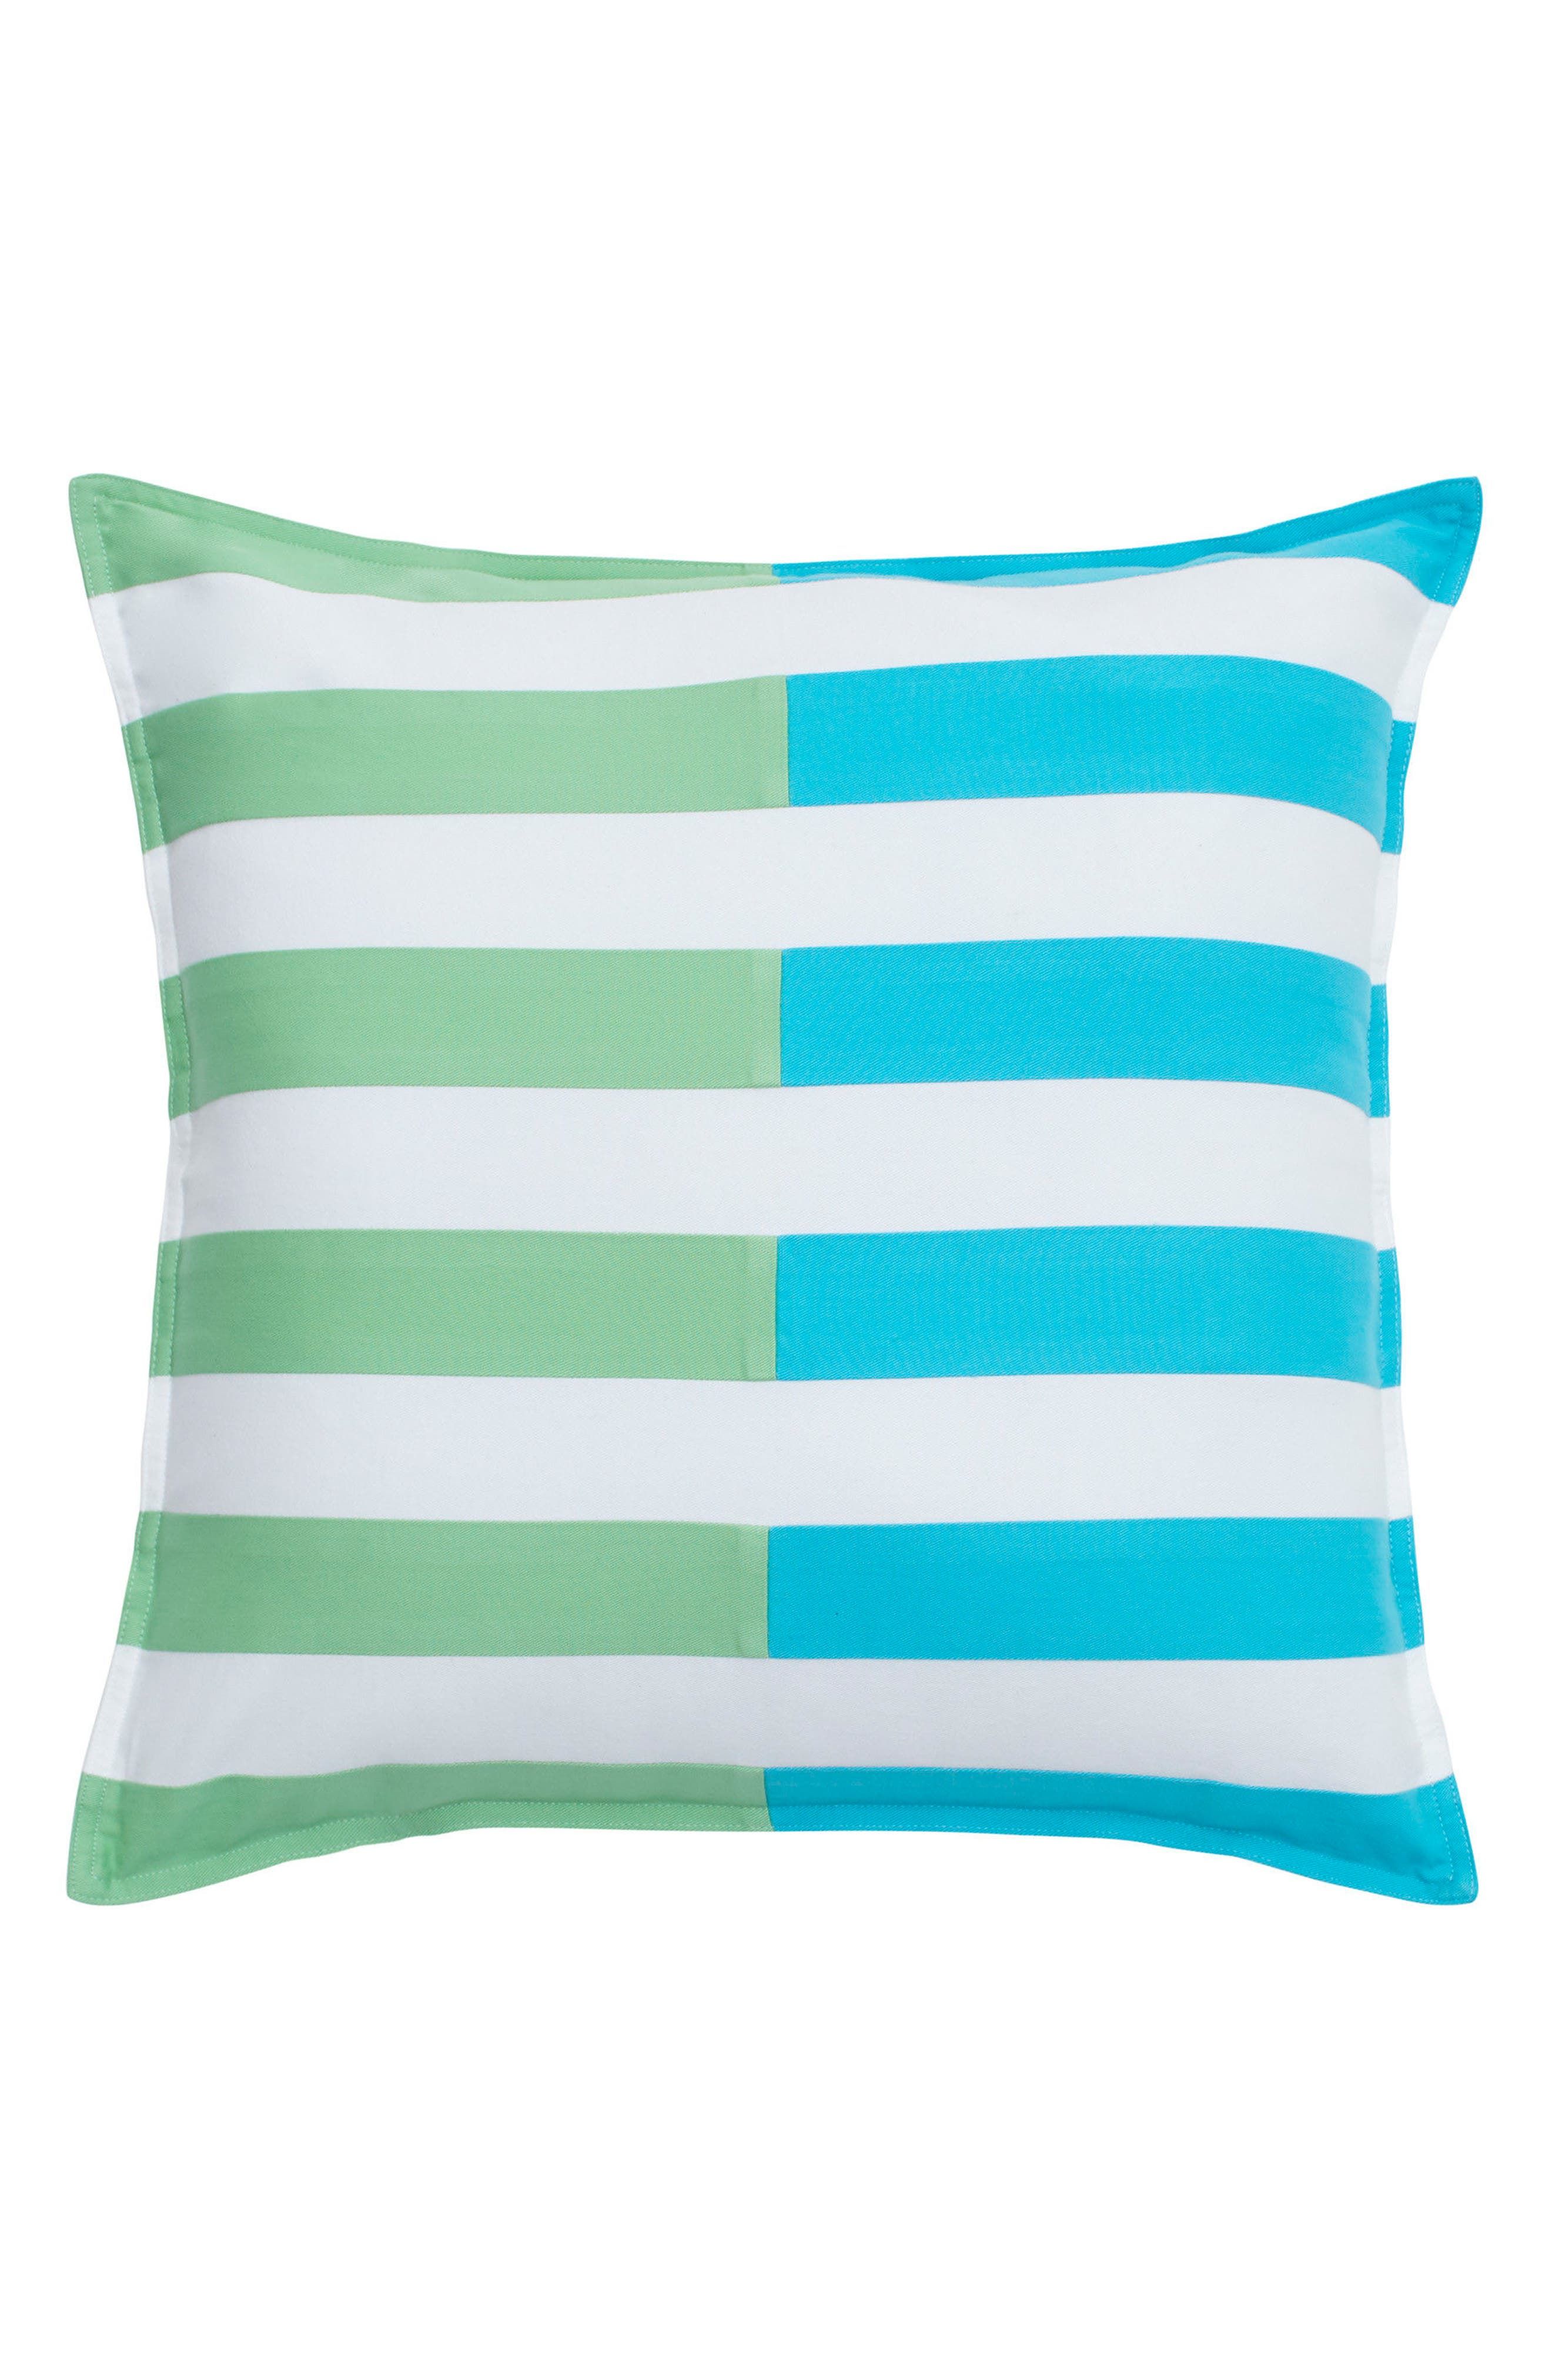 Skipjack Chino Pieced Accent Pillow,                         Main,                         color, Island Blue/ Kiwi/ White